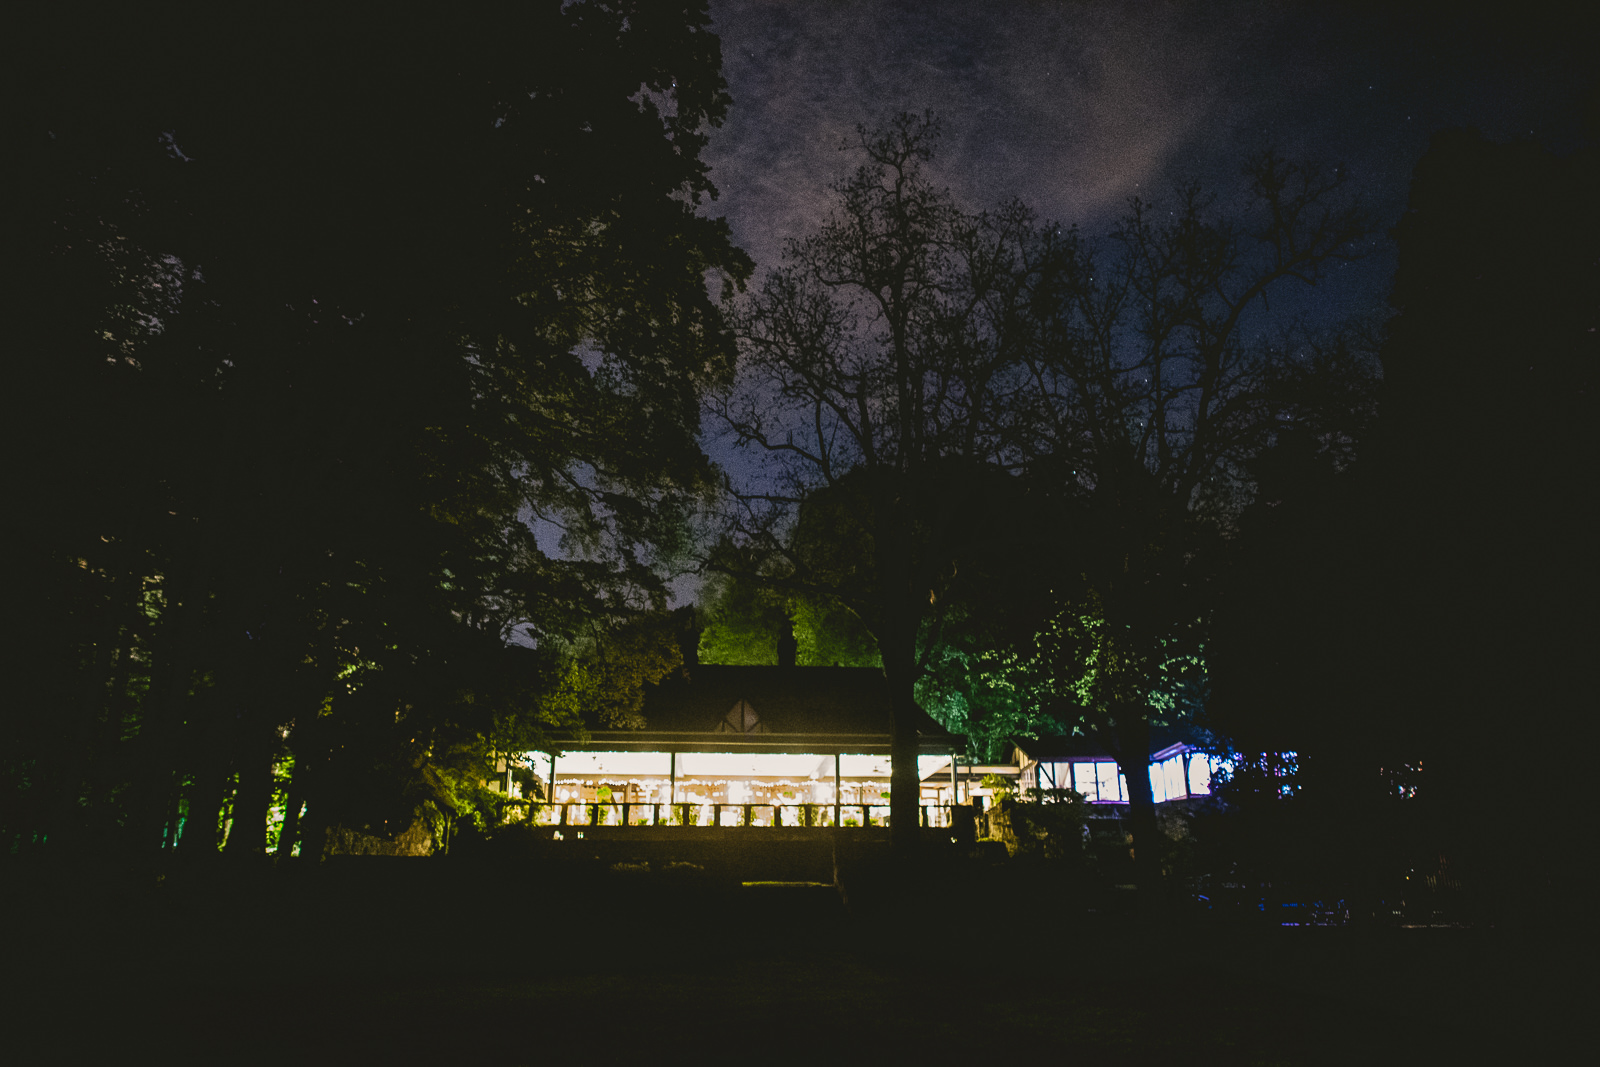 71 club of hillbrook night photos - Club of Hillbrook Wedding // Jenna + Ben